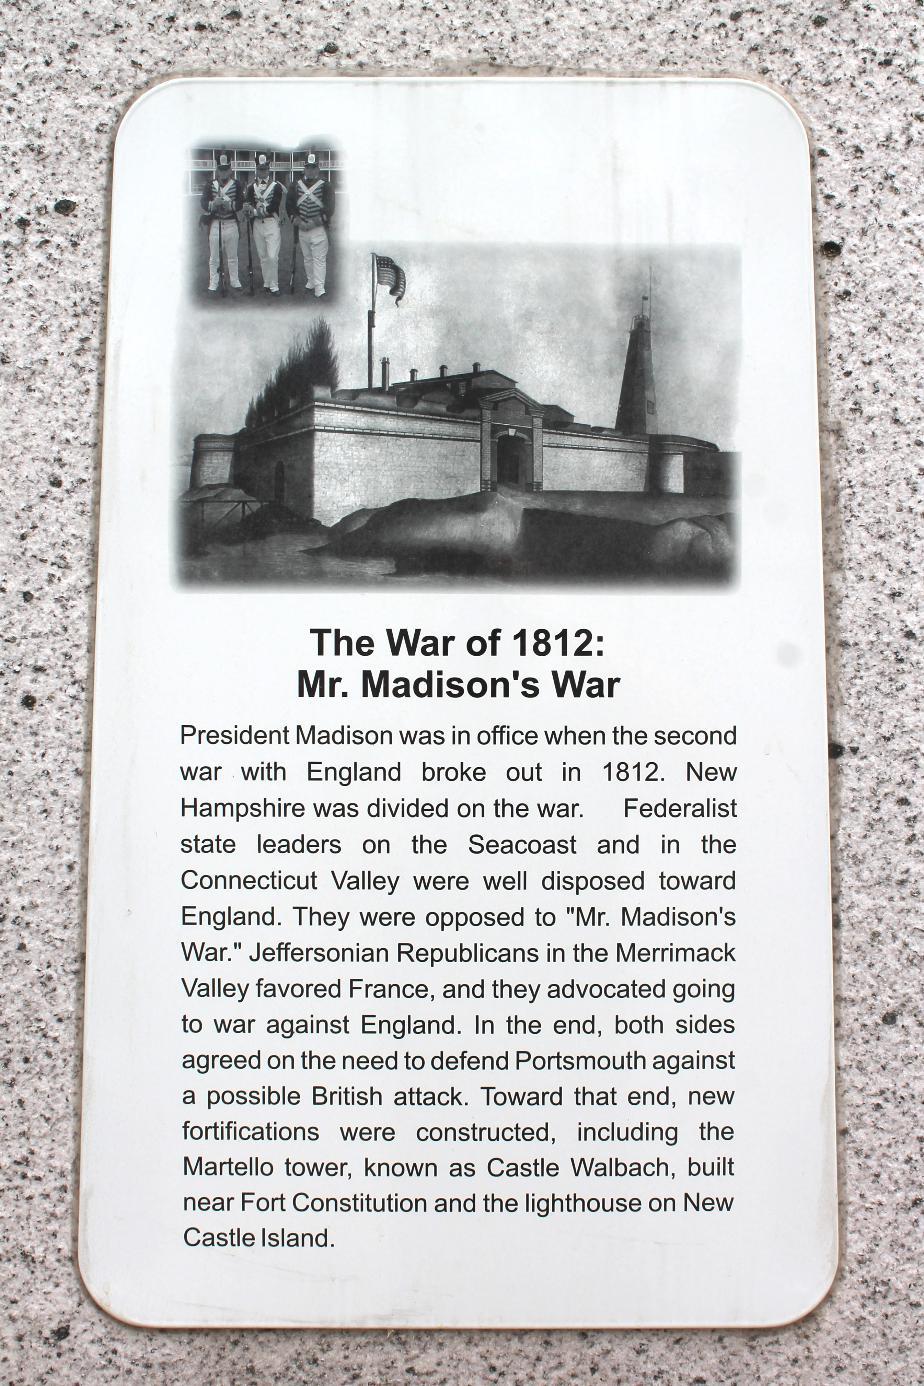 NH State Veterans Cemetery - The War of 1812 - Mr. Madison's War